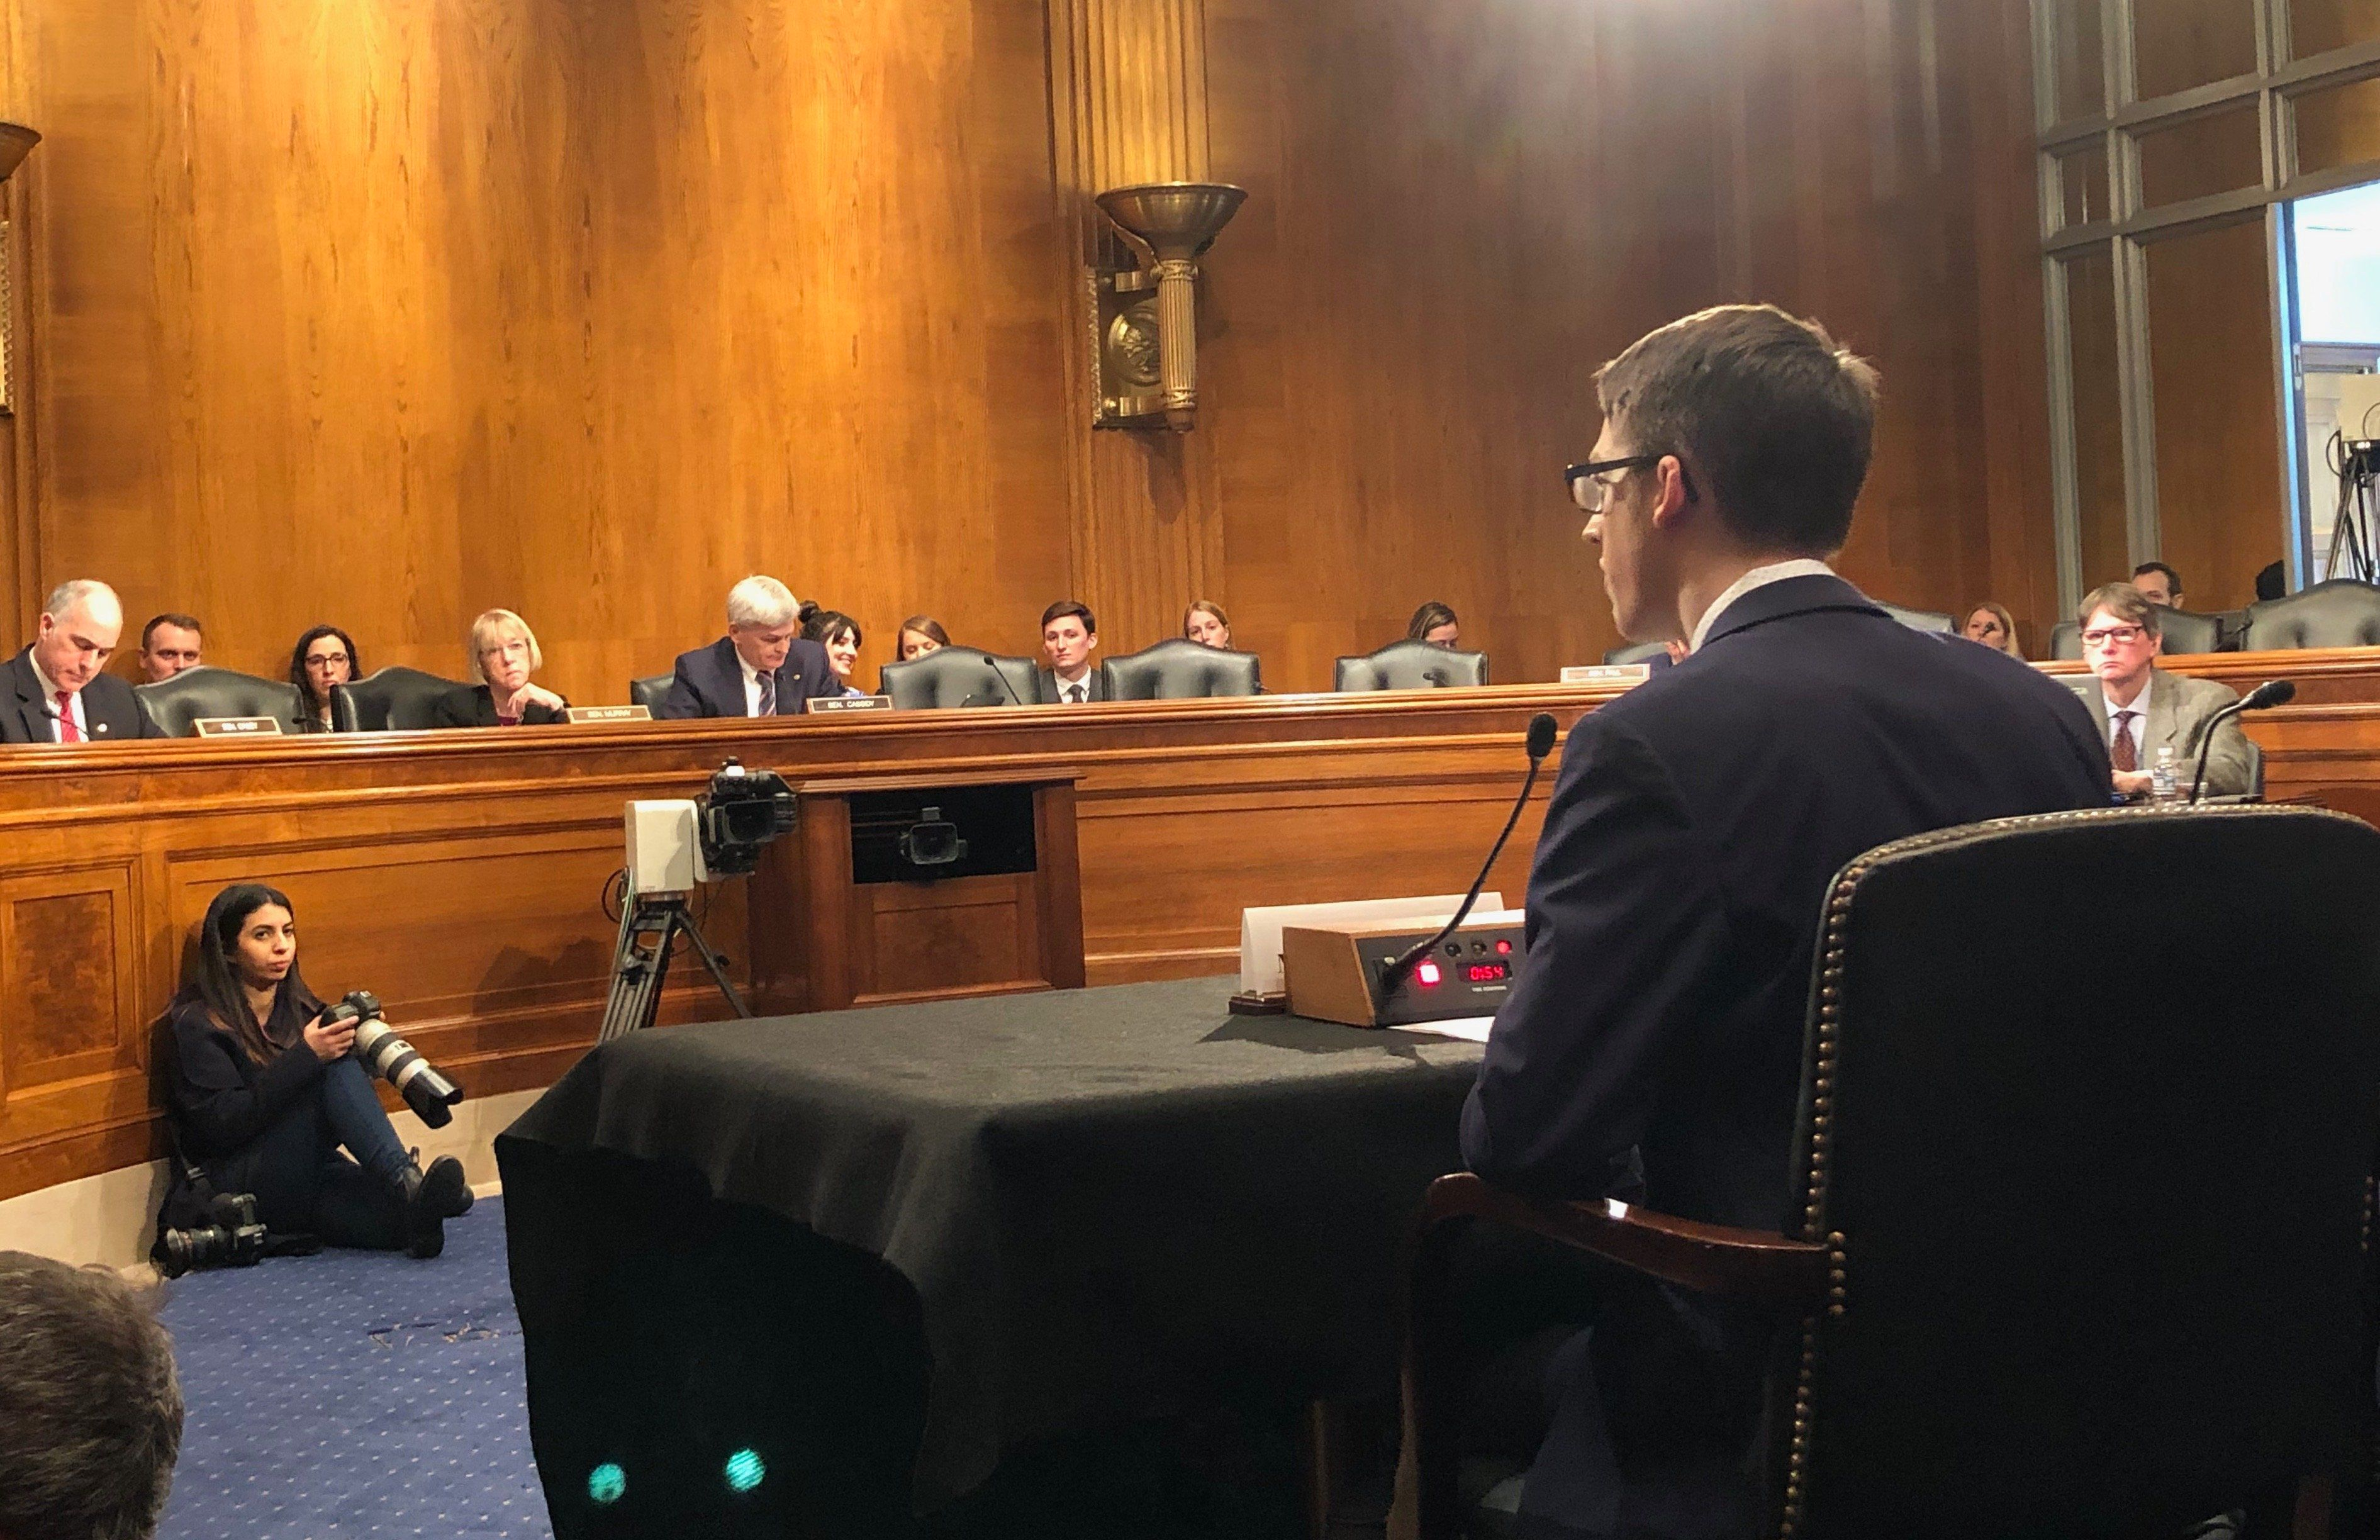 Ethan Lindenberger testifies during a hearing before the Senate Committee on Health, Education, Labor and Pensions on Capitol Hill in Washington, DC, on March 5, 2019. (Photo: Alexander Nazaryan/Yahoo News)